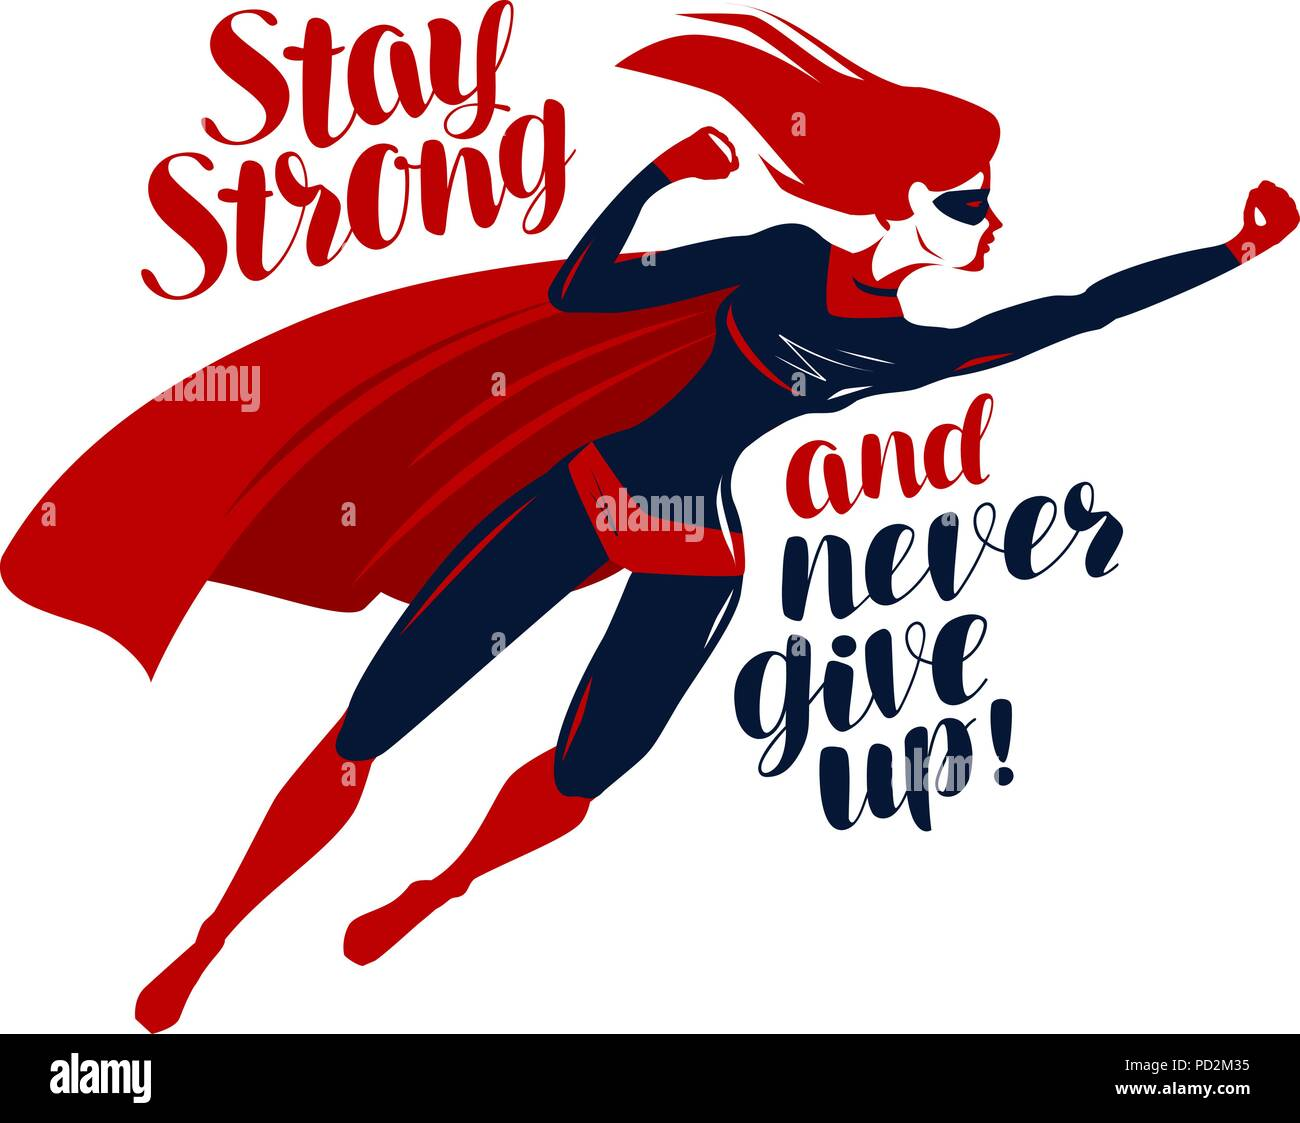 Supergirl, superhero flying up rapidly. Stay strong and never give up, motivating quote. Vector illustration - Stock Vector